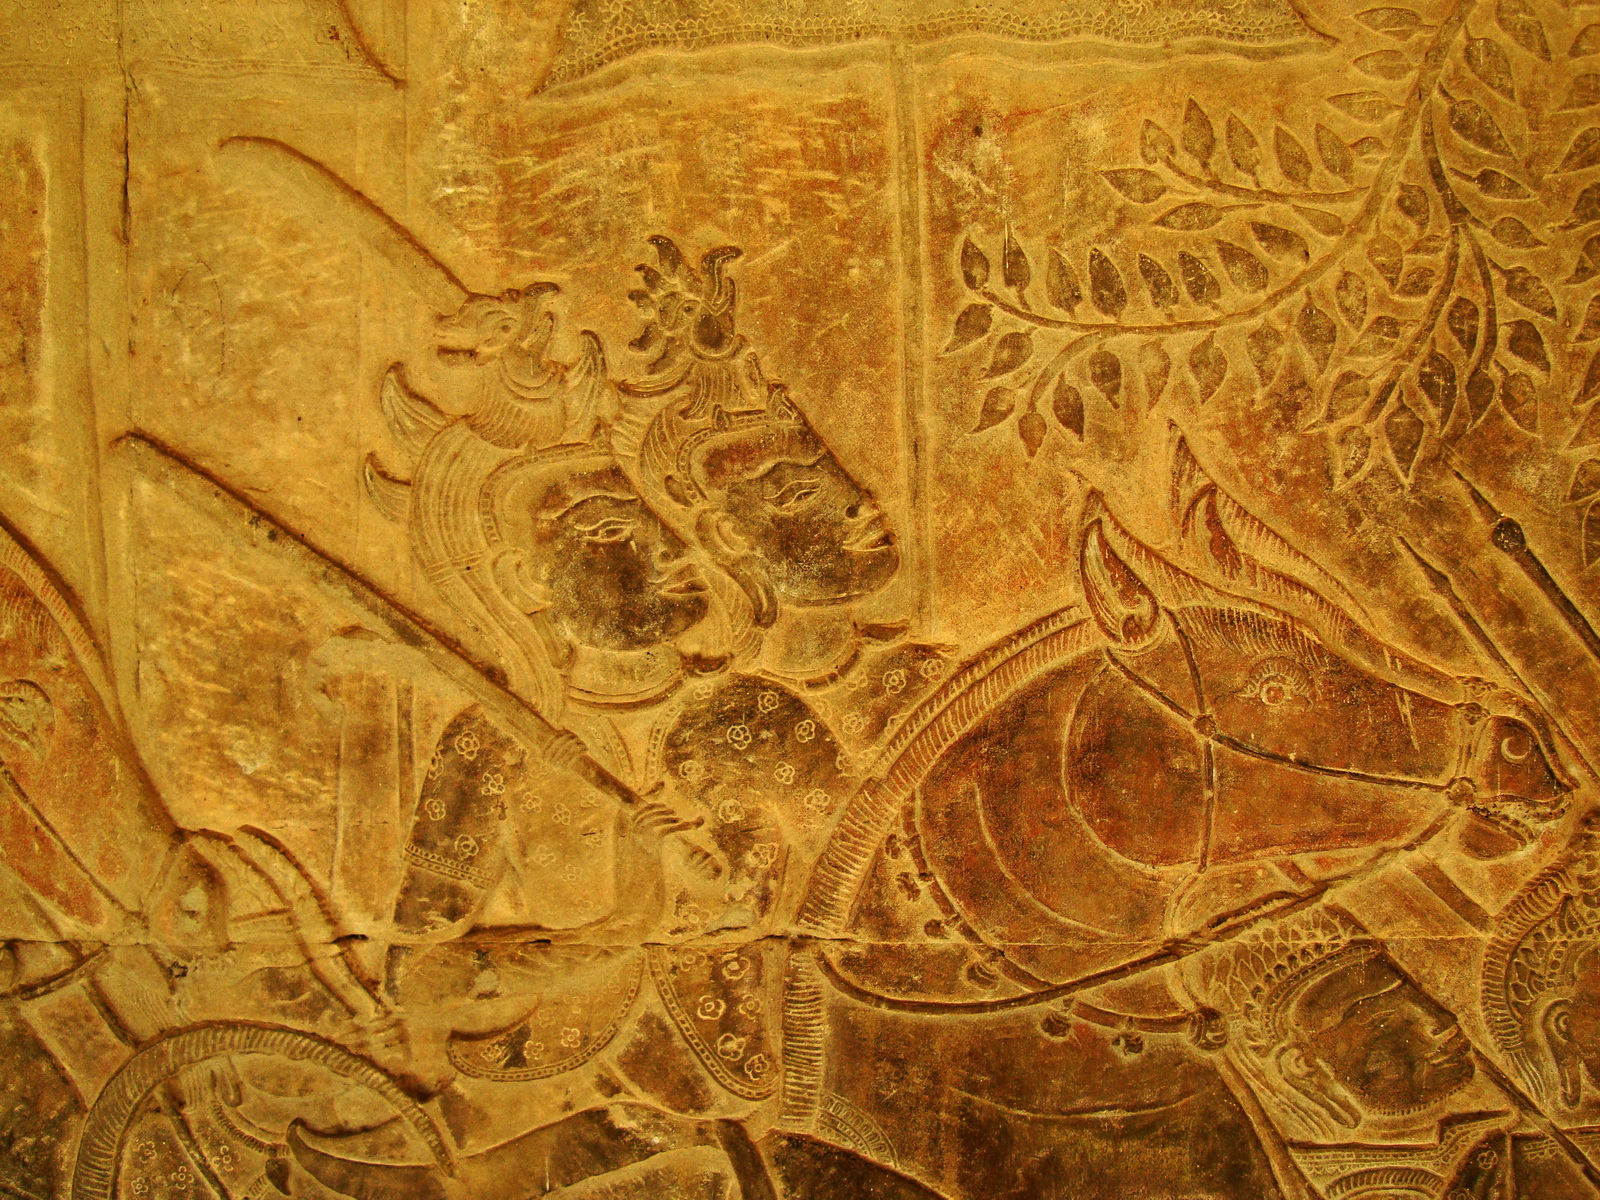 Angkor Wat Bas relief S Gallery W Wing Historic Procession 094